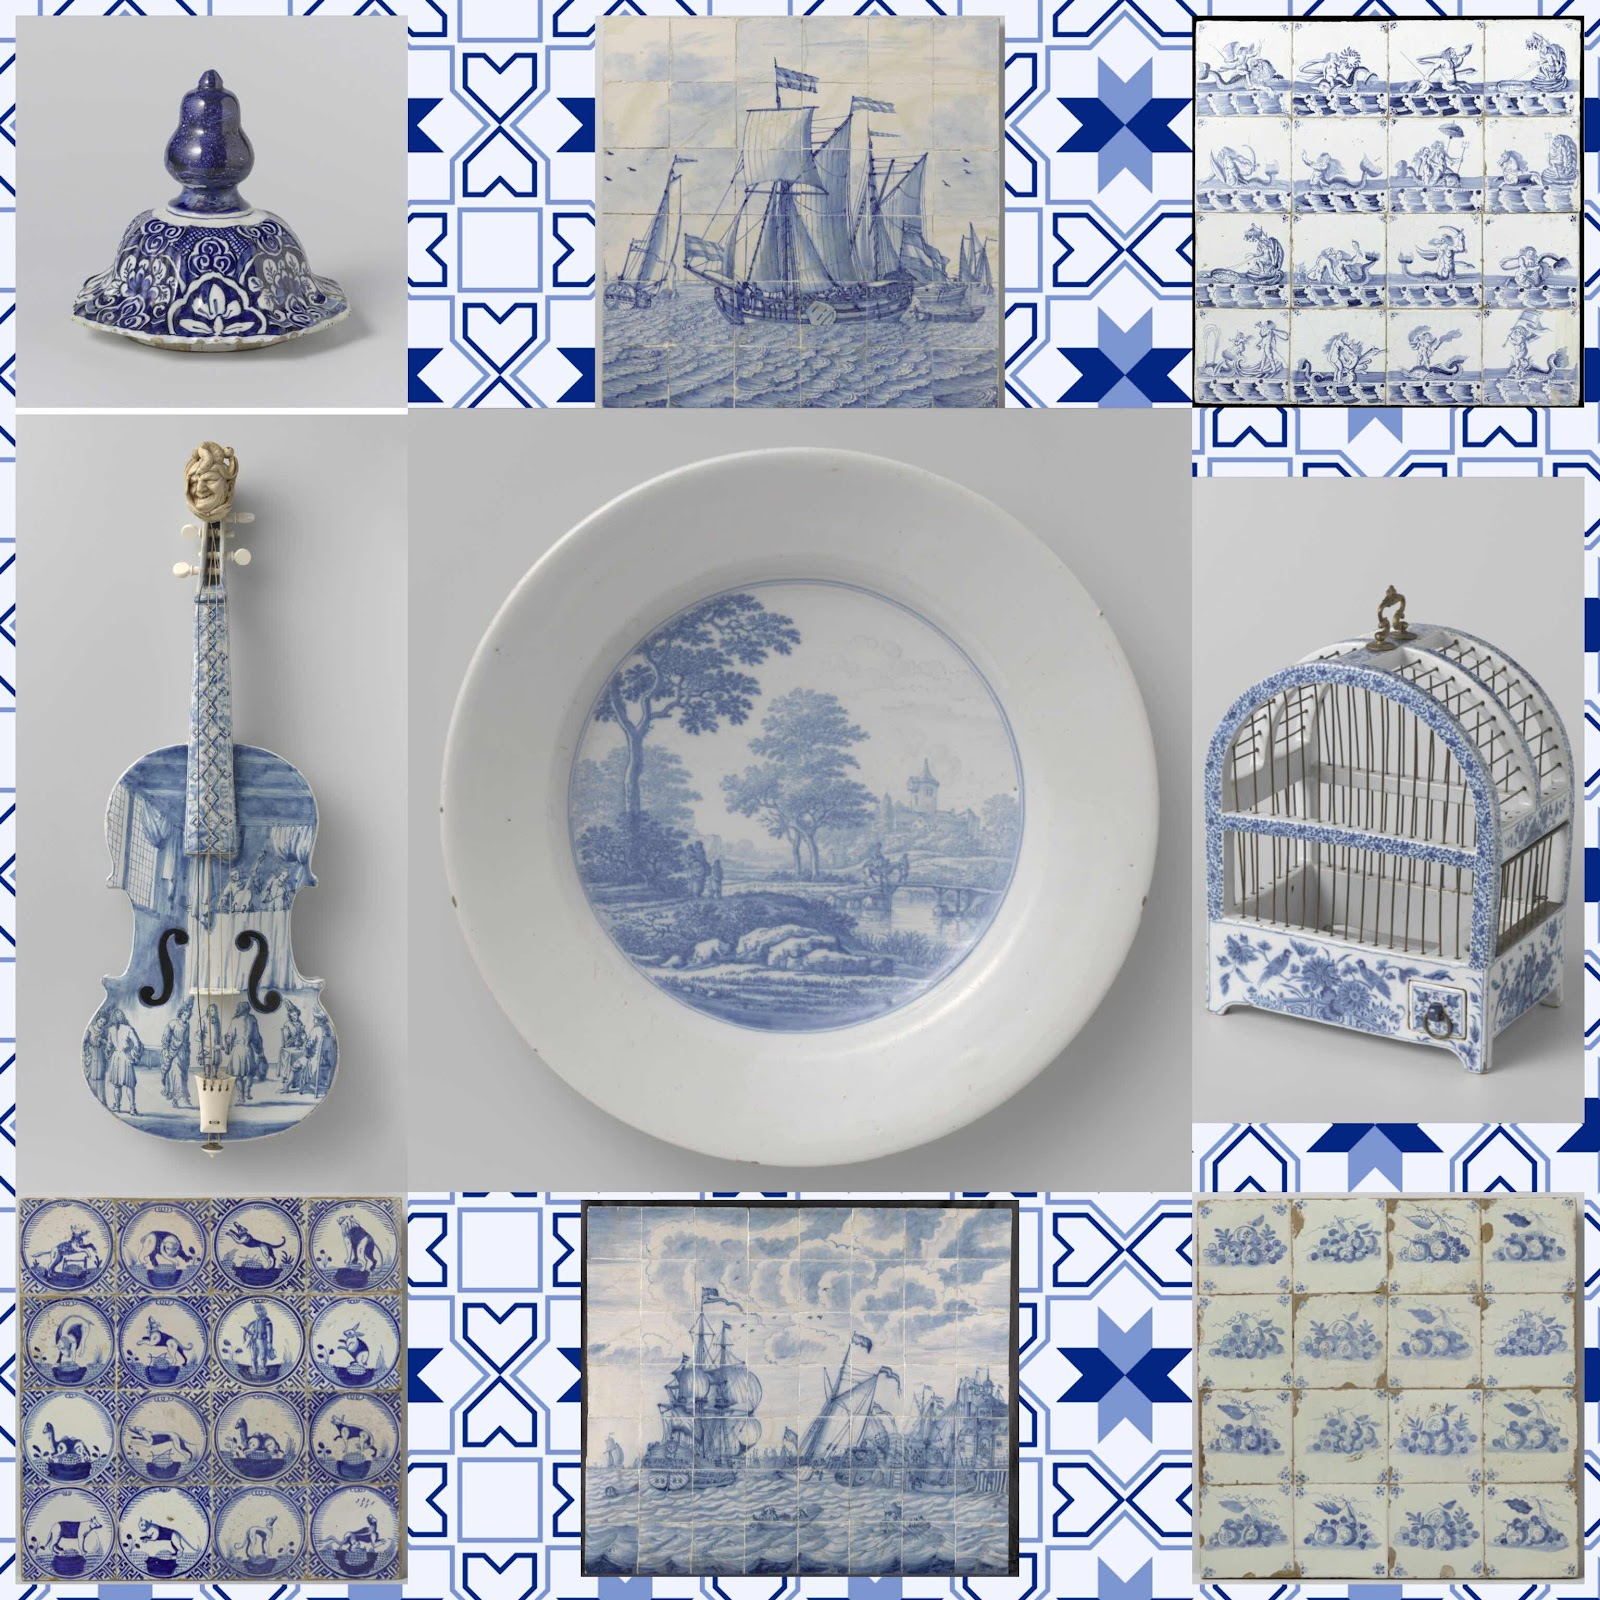 Several examples of Delft pottery in shades of blue and white, including a violin, tiles of fruit, a birdcage, and tiles depicting ships